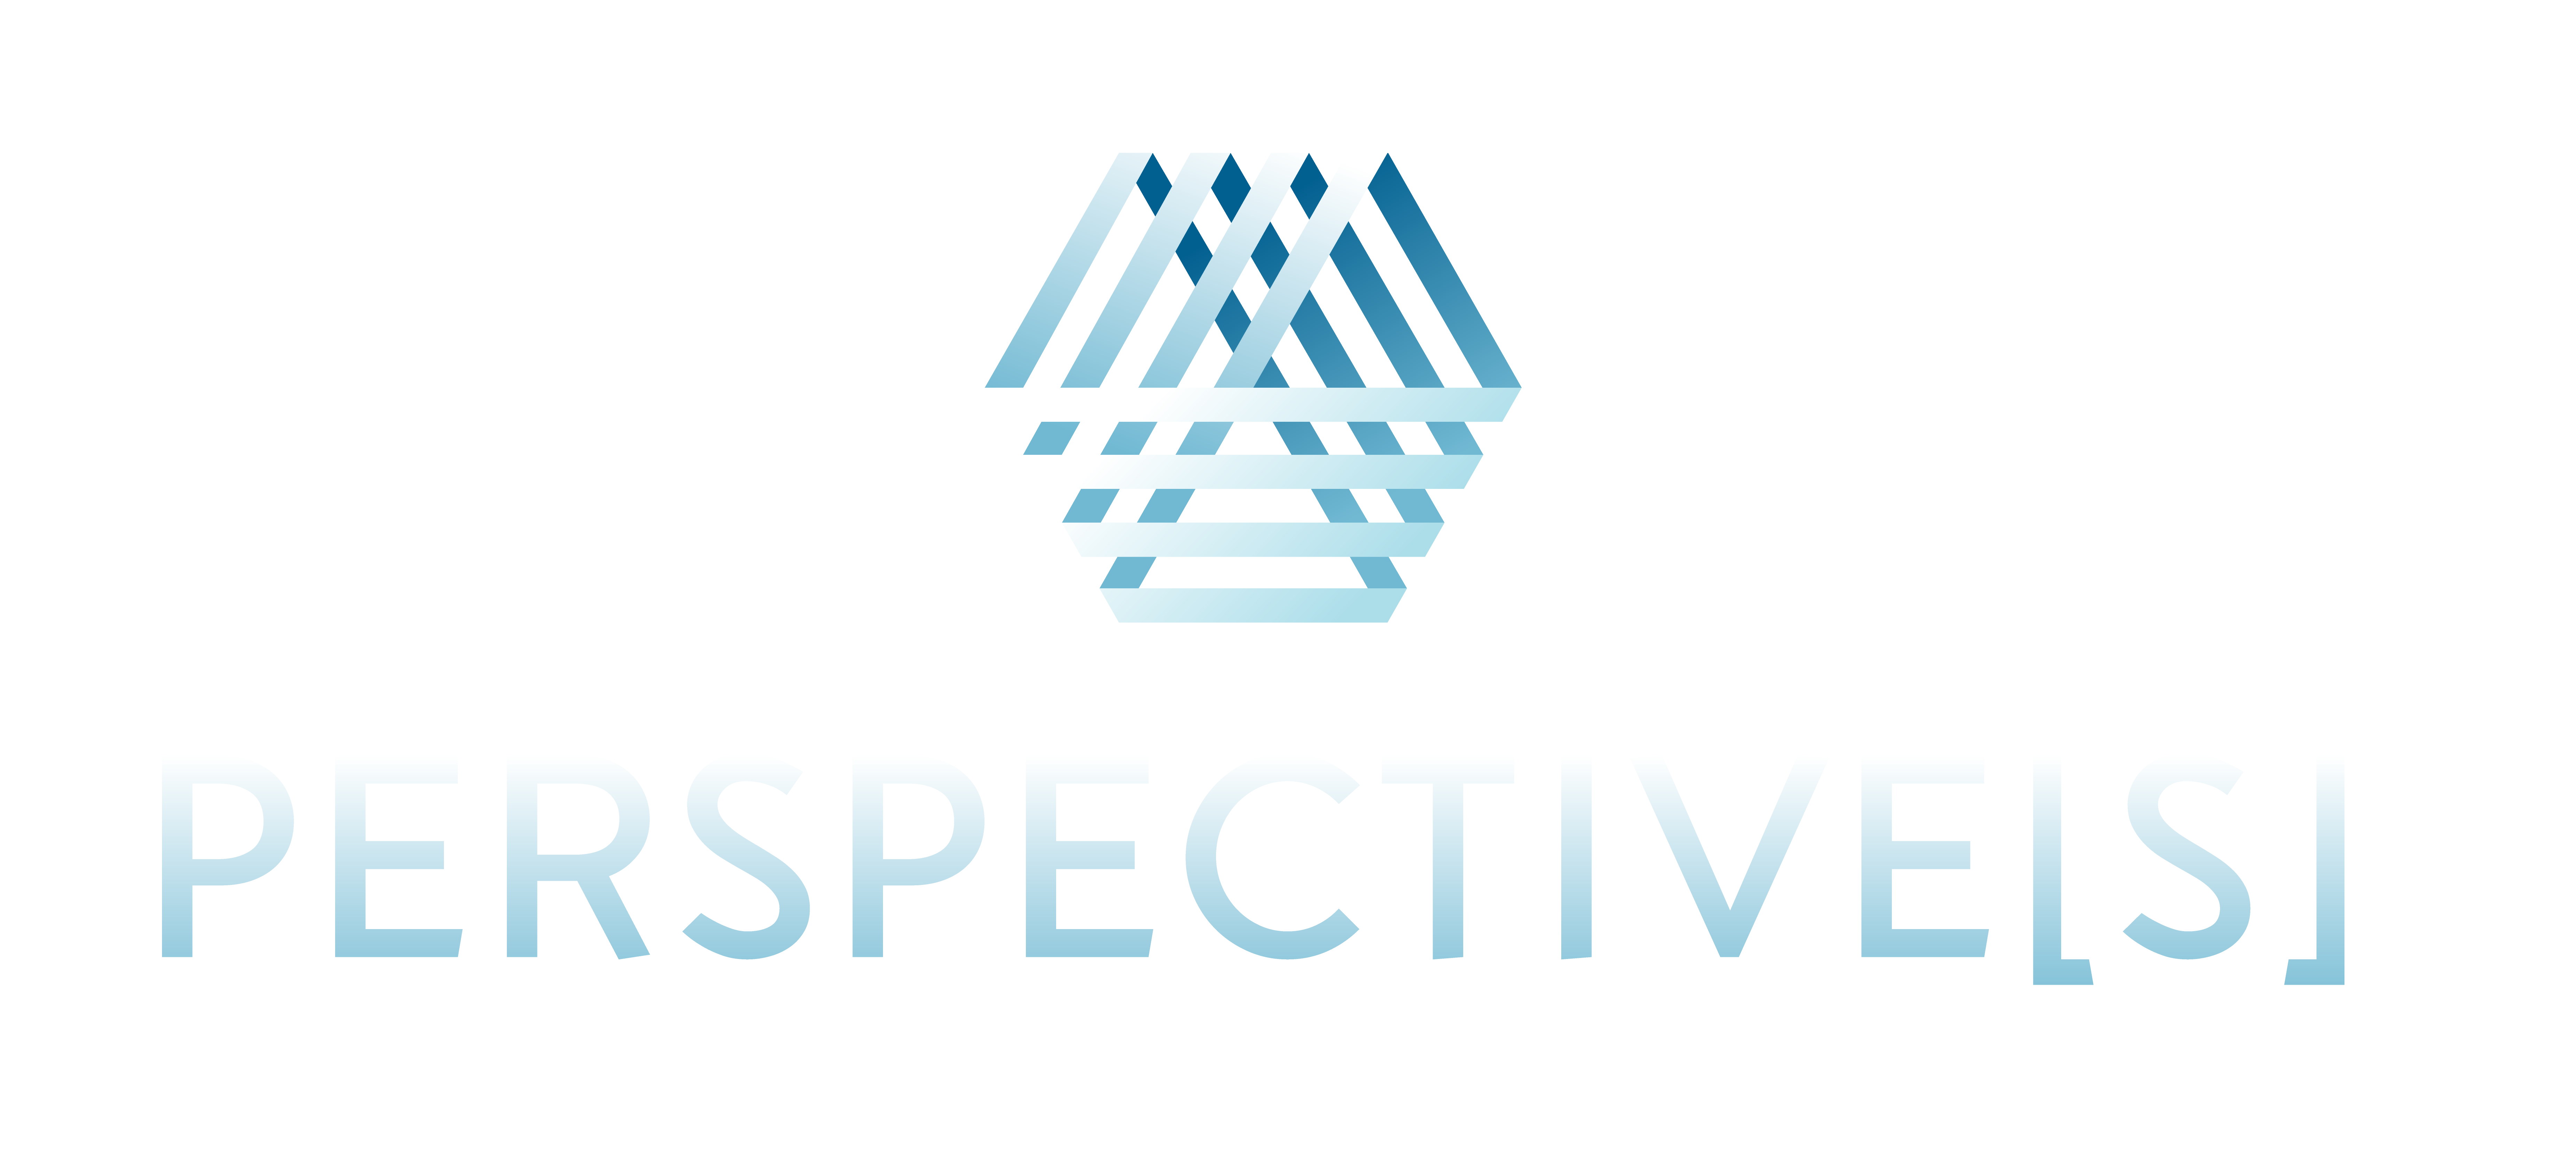 perspectives - LOGO - REVE - PERSPECTIVE[S] - CES 2019